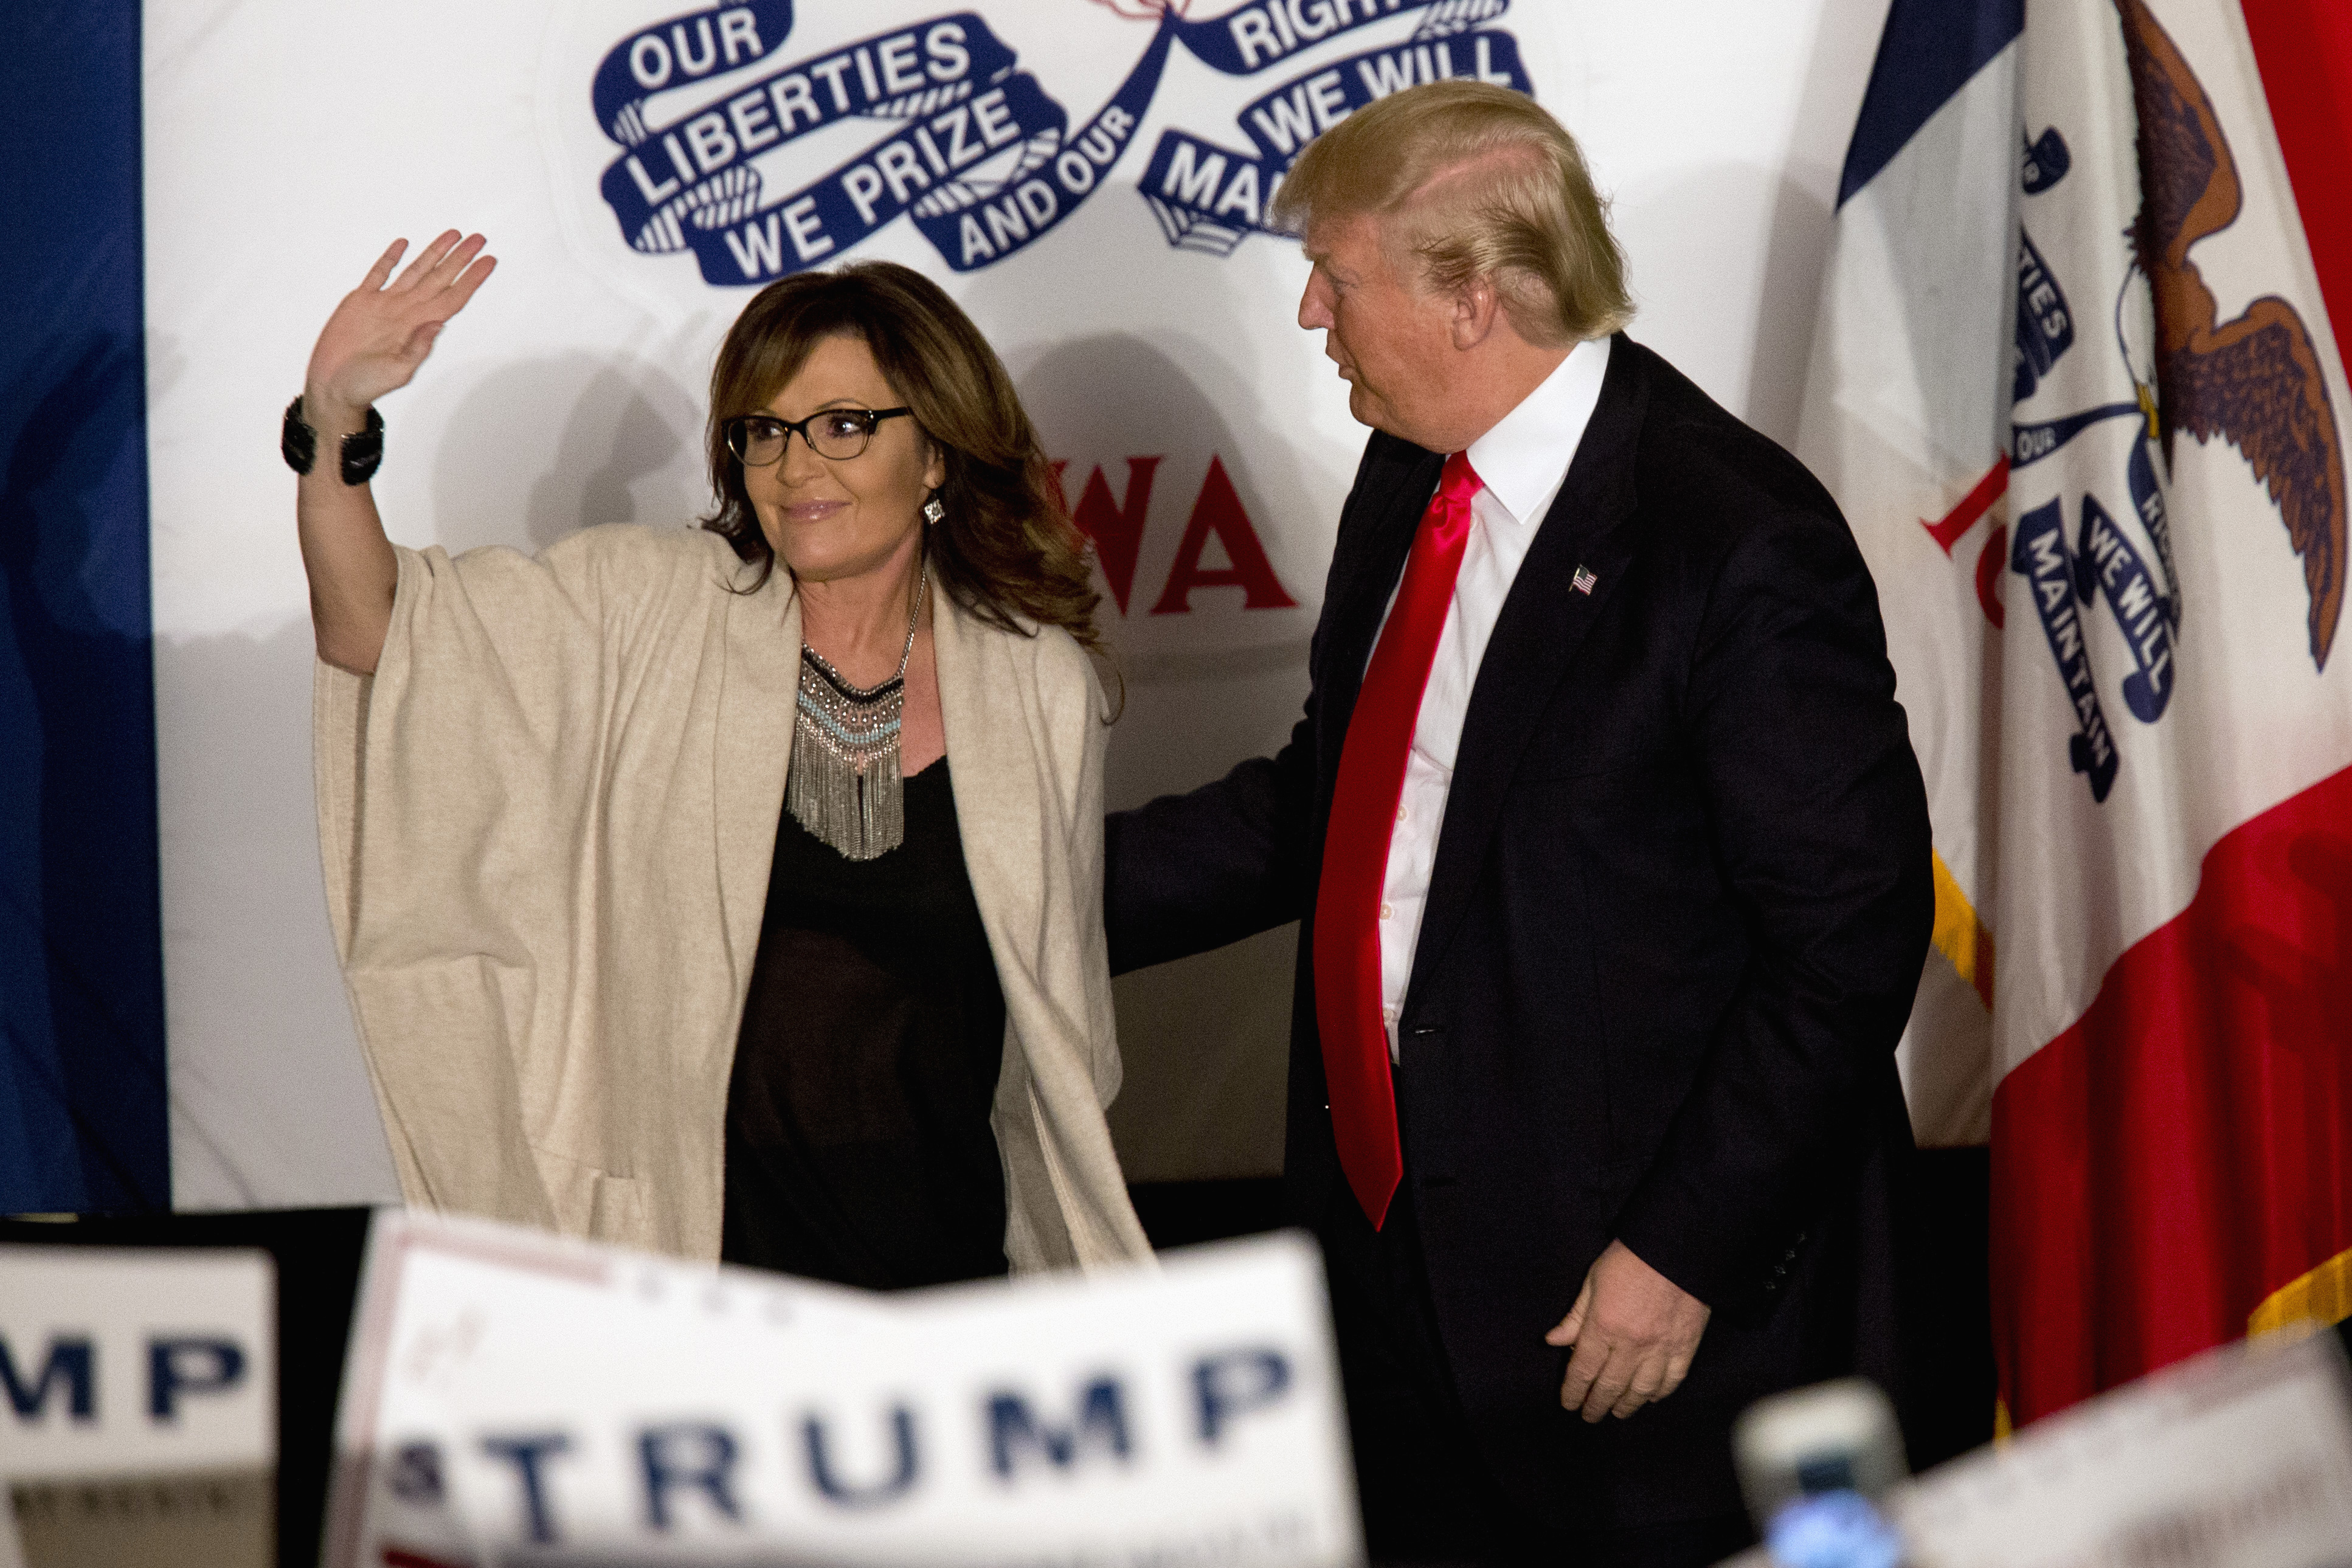 Republican presidential candidate Donald Trump is joined on stage by former Republican vice presidential candidate, and former Alaska Gov. Sarah Palin during a campaign event, Monday, Feb. 1, 2016, in Cedar Rapids, Iowa. (AP Photo/Mary Altaffer)